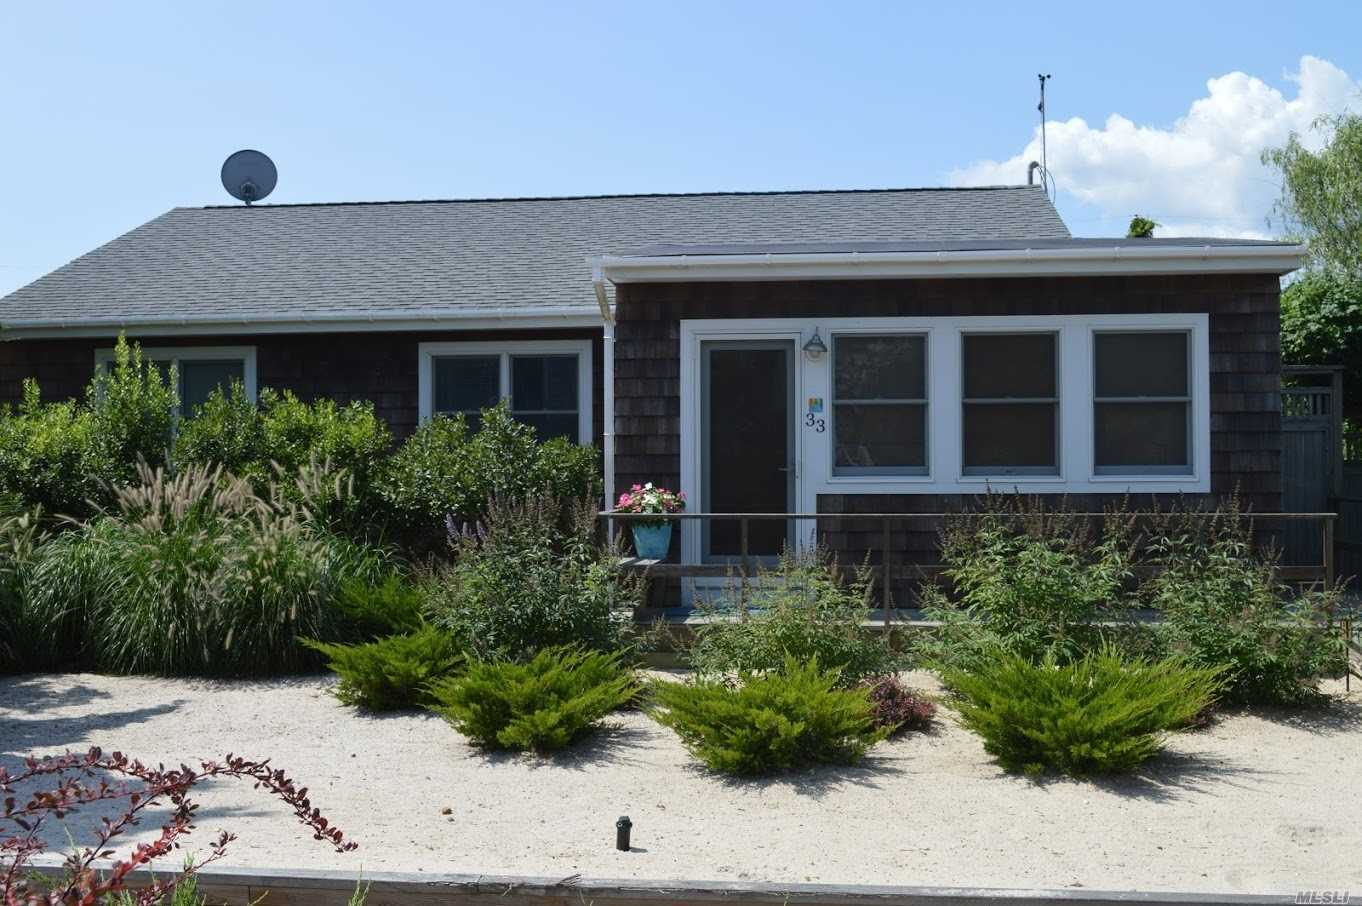 Charming Renovated Beach House In The Summer Club Condo Assoc Within Walking Distance To Ocean Beach. House Has 1, 355 Sf W/Enc Porch, Lr, Eik, Dr, Den, Mbr W/Mbth, 3 More Brs & Fbth. Guest Cottage With Den & .5 Bth. 60' X 100' Parcel With 906 Sf Deck & Outdoor Shower. Heat Pump For Heat & Cac, Wood Floors, New Waterproof Sheetrock, 200 Amp Electric & Insulation Post Hurricane Sandy. Summer Club Has Clubhouse With Gym, Har-Tru Tennis Courts & Gorgeous Private Beach. Flood Insurance $1, 437/Yr.